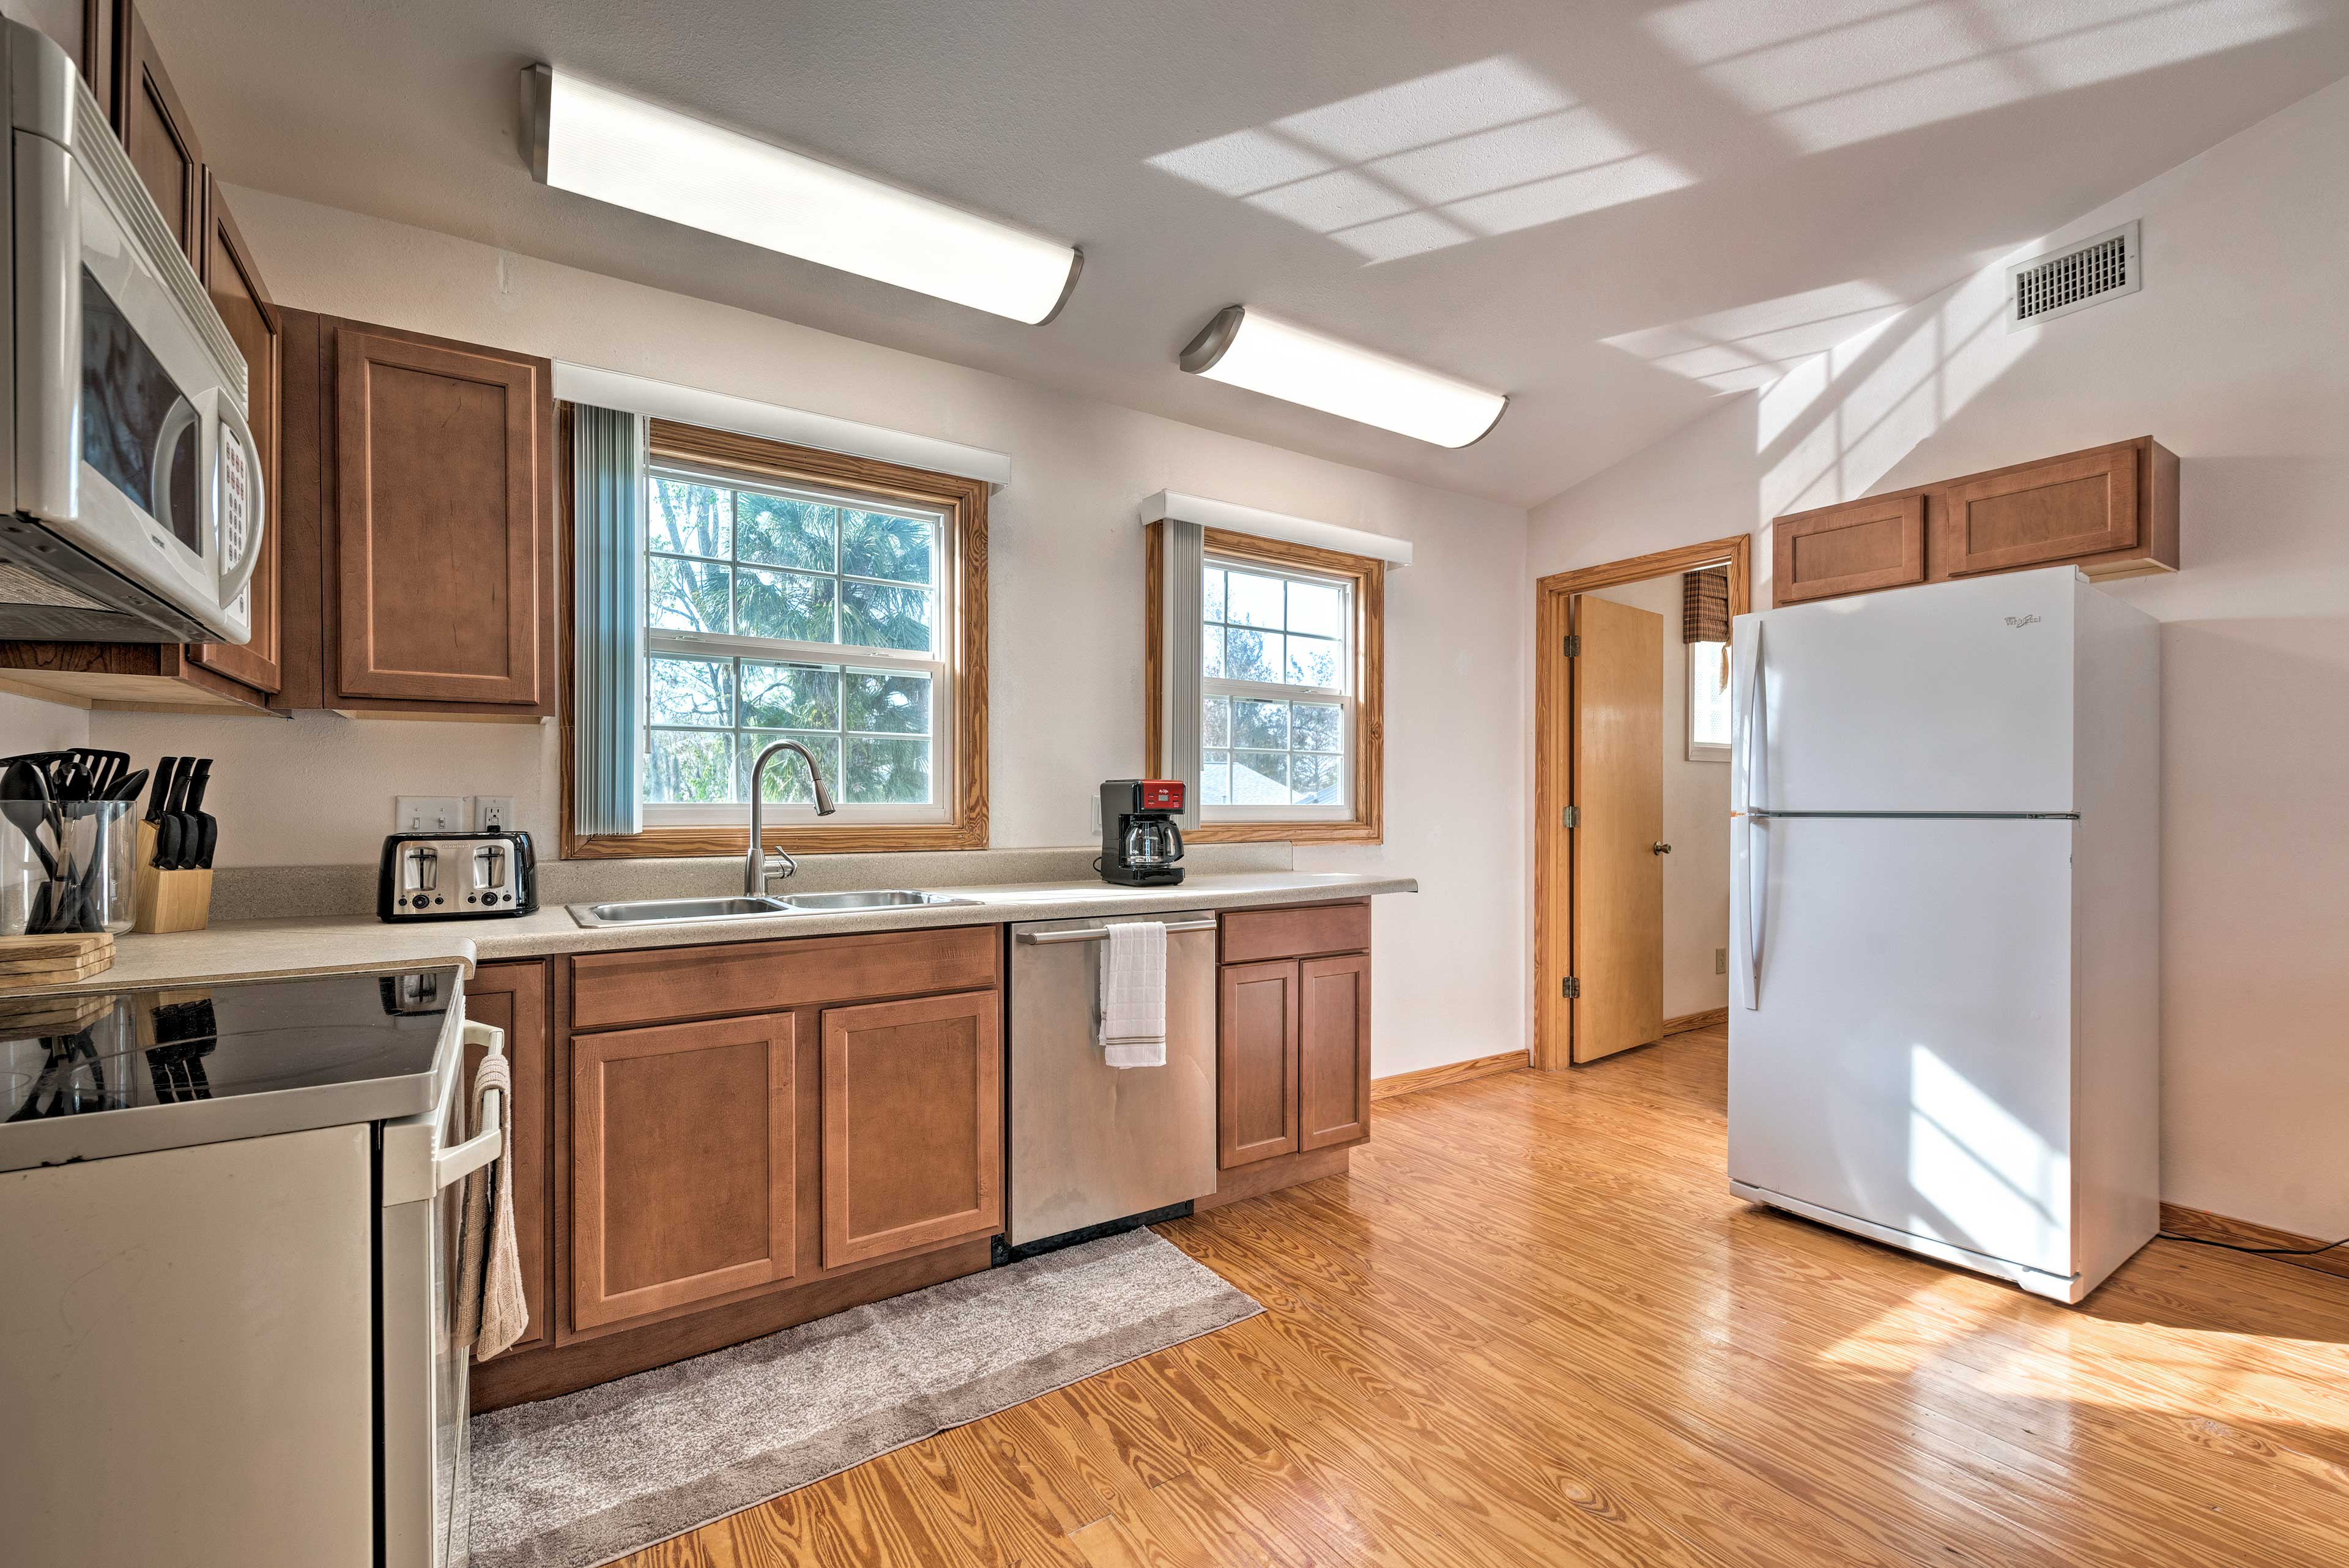 Make coffee or snacks in the fully equipped kitchen.